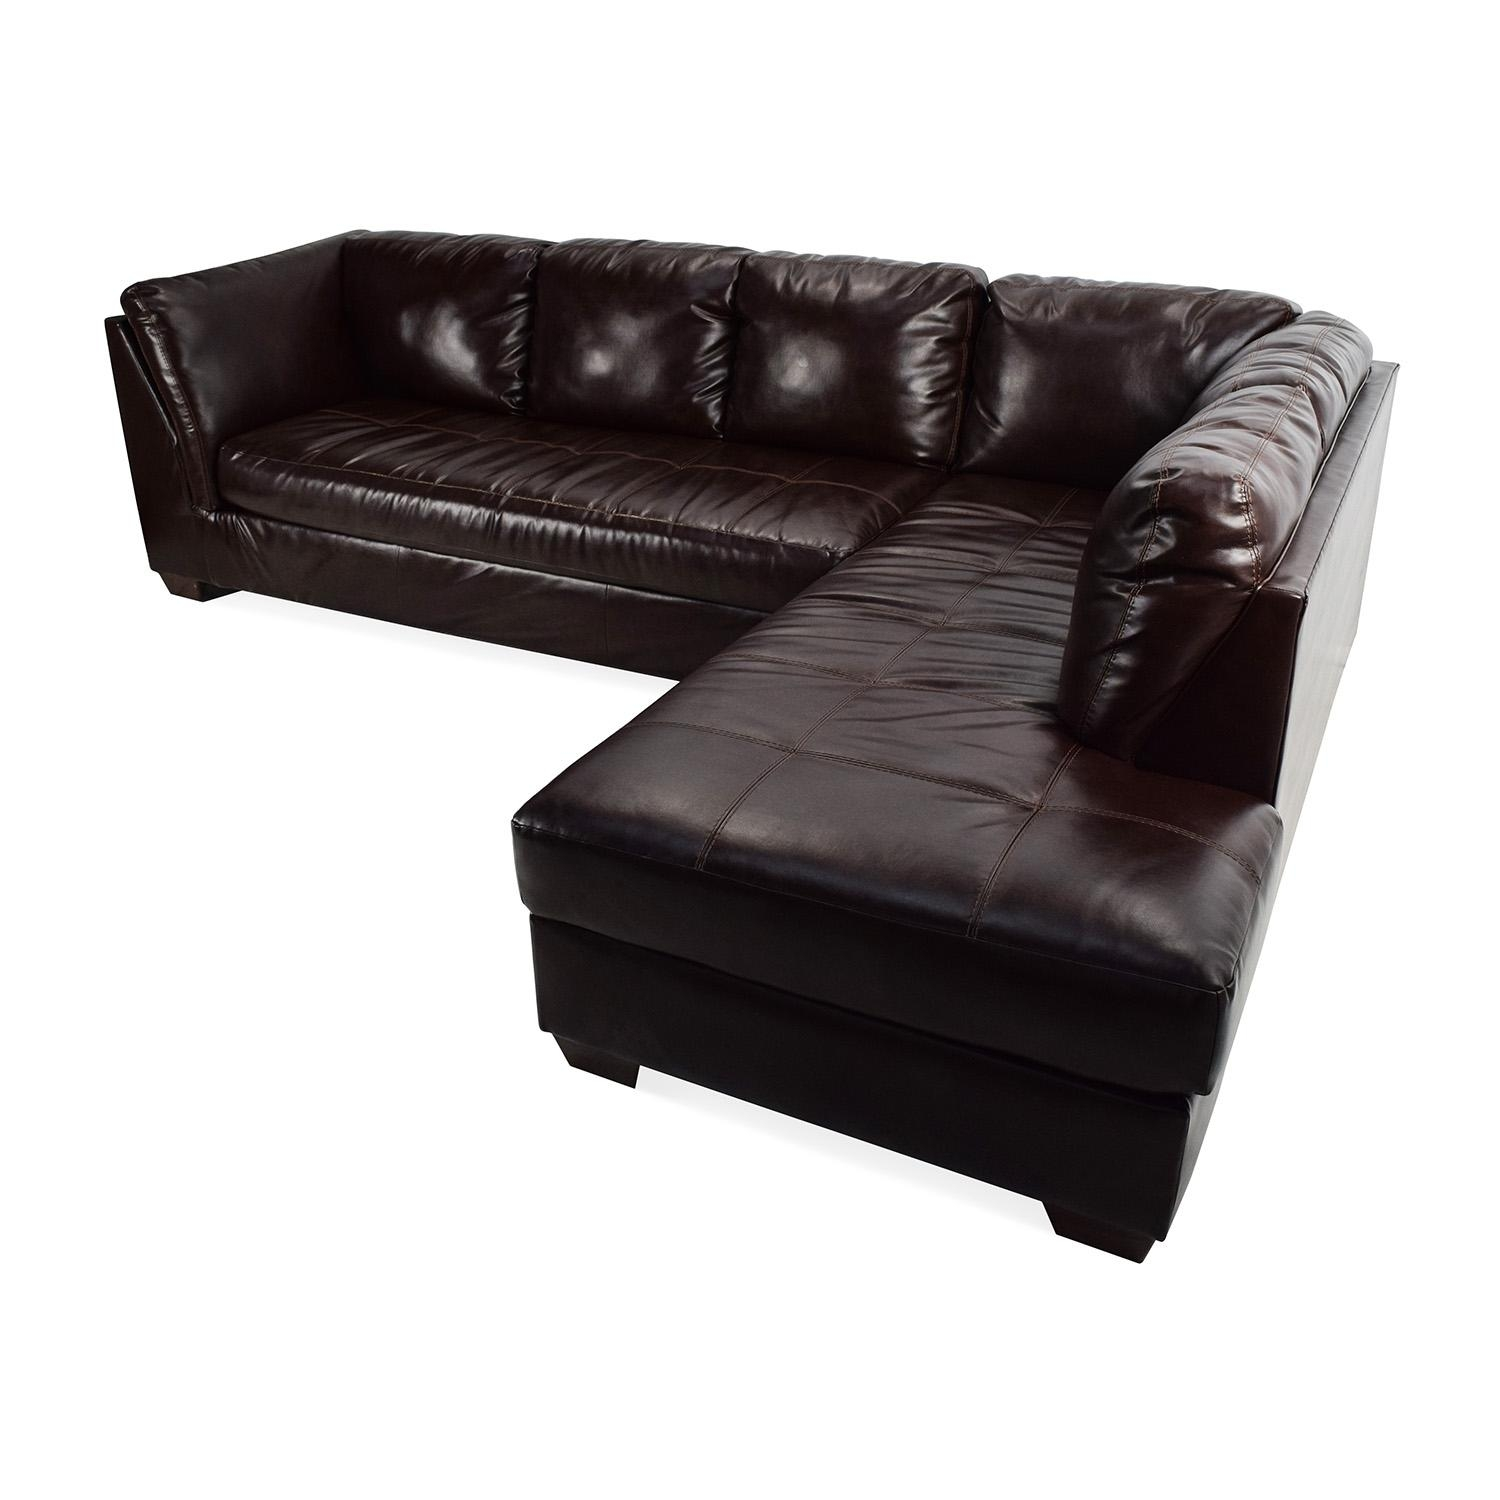 75% Off - Jennifer Convertibles Jennifer Convertibles Brown with Jennifer Sofas